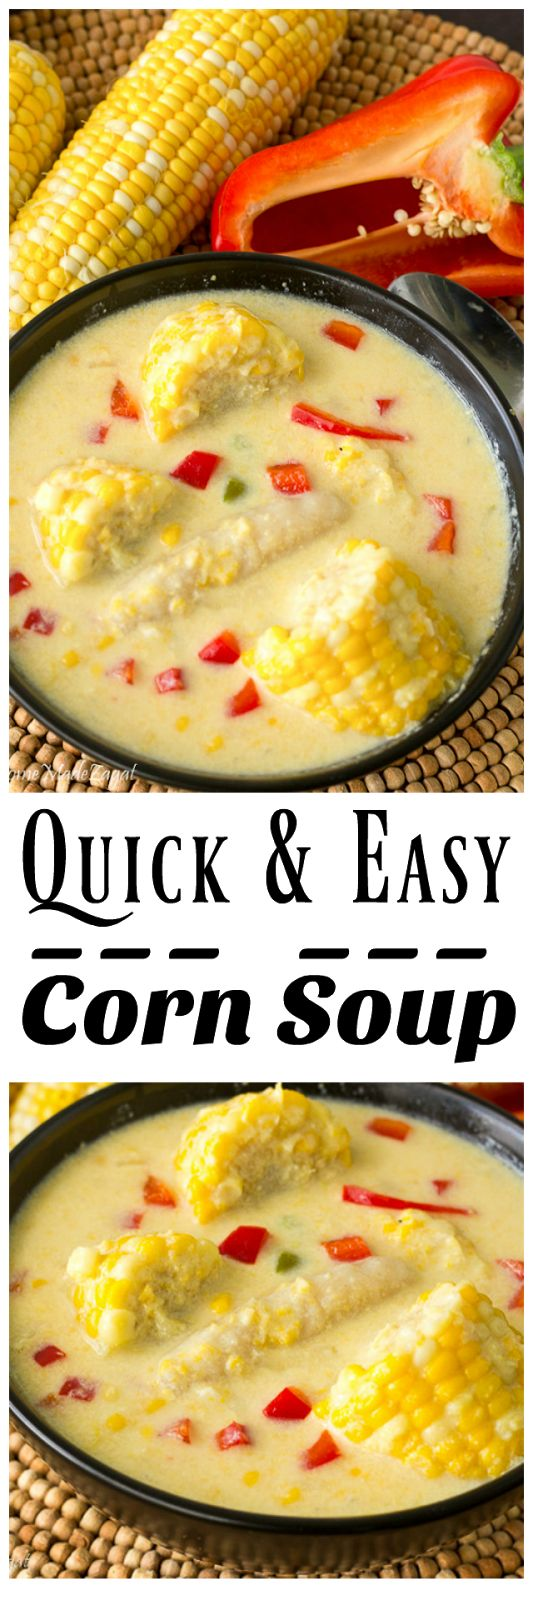 A quick version of the popular Trinidadian corn soup, full of creamy corn and perfect for both hot and cold weathers.